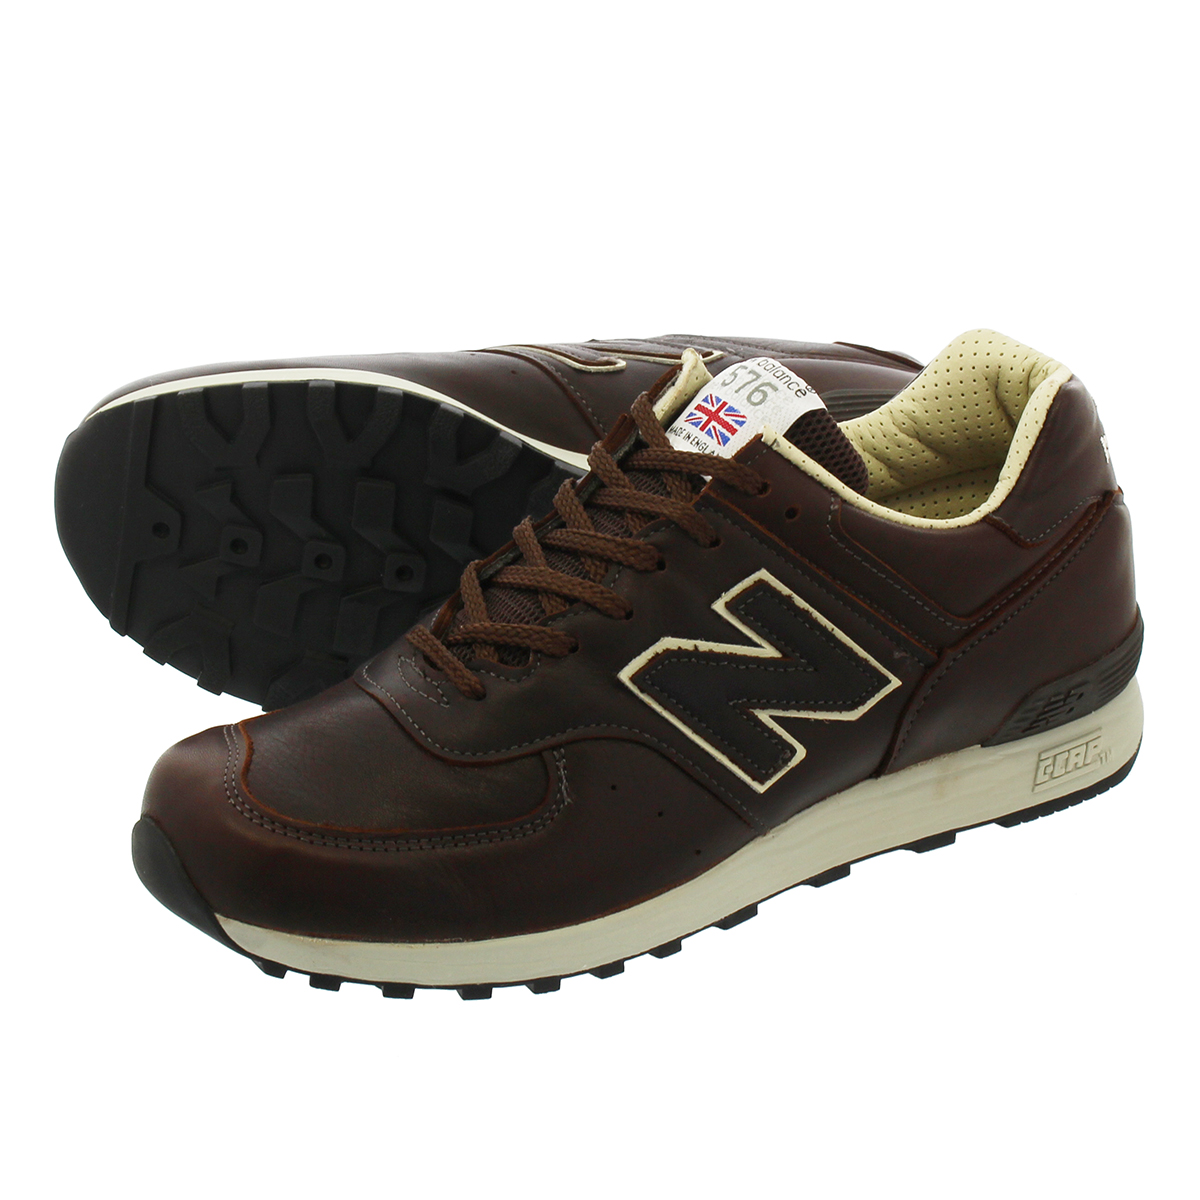 NEW BALANCE M576CBB 【Made in England】 ニューバランス M 576 CBB BROWN/BEIGE